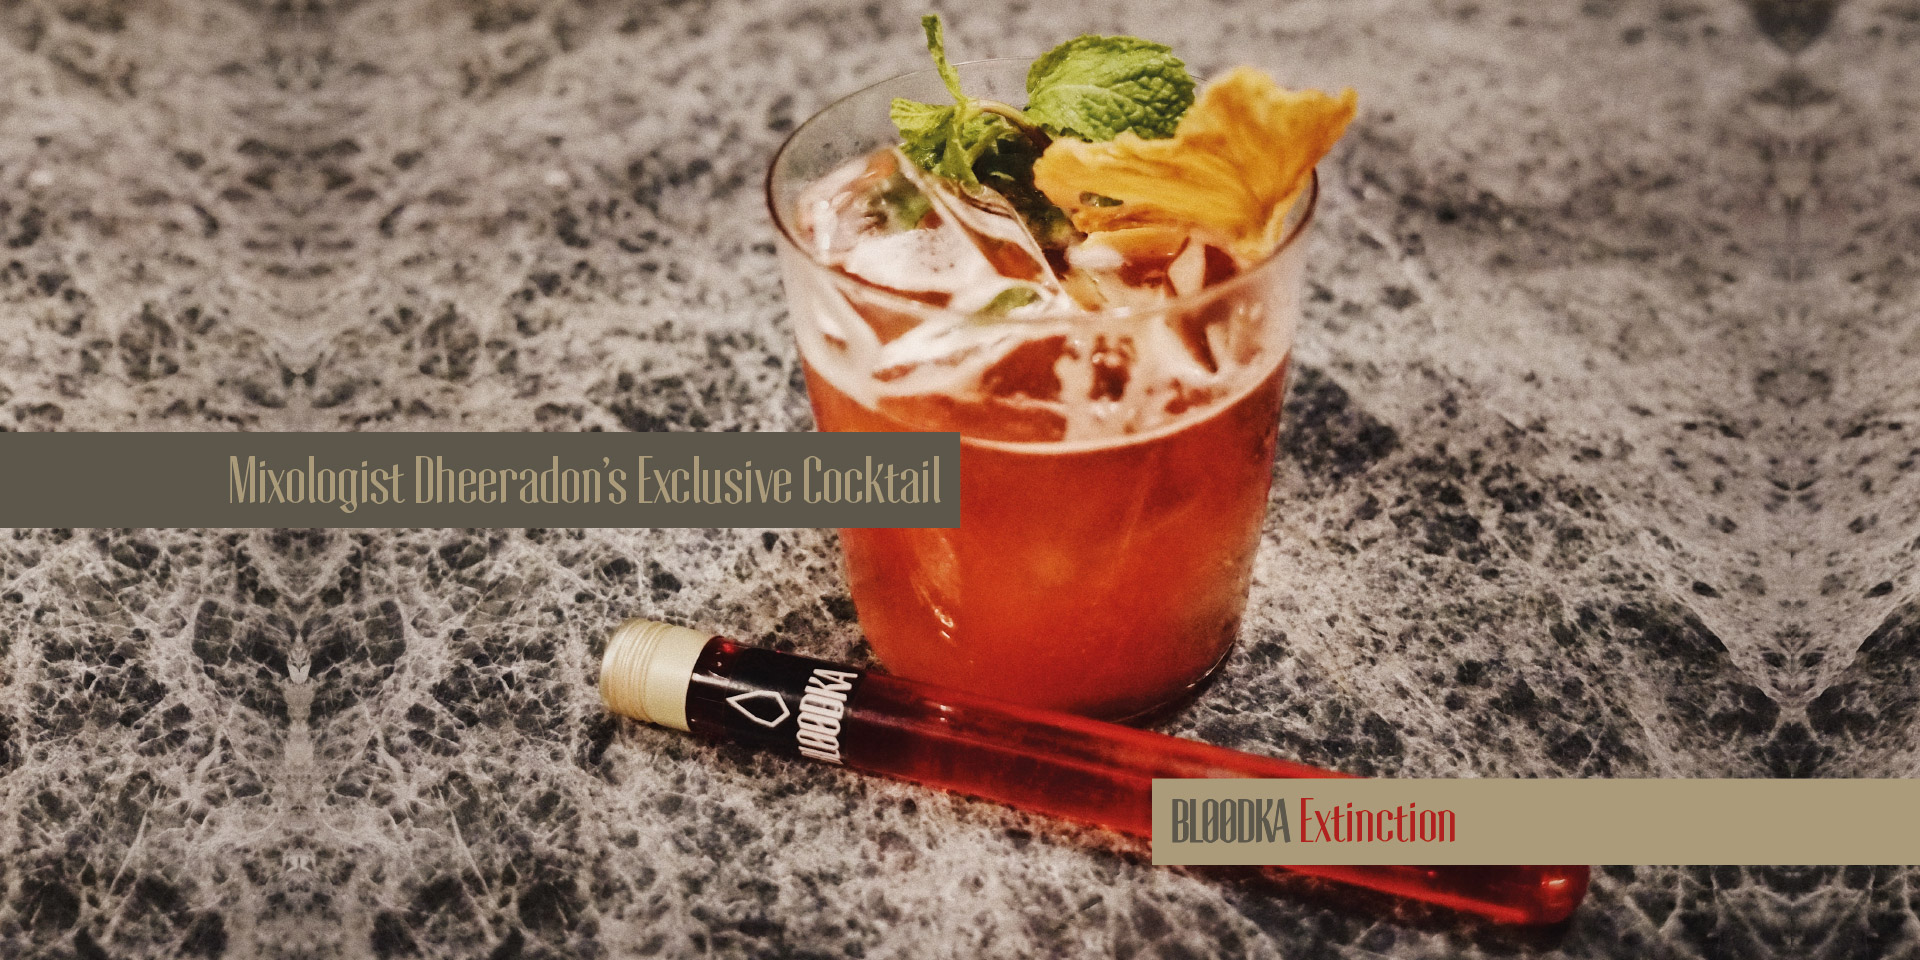 BLOODKA, FORGET ABOUT VODKA - THE ONLY 52,8° DEEP RED SPIRIT MADE IN FRANCE - PACKSHOT - Cocktail by Dheeradon - Bloodka Extinction - Photo : Roc Chaliand